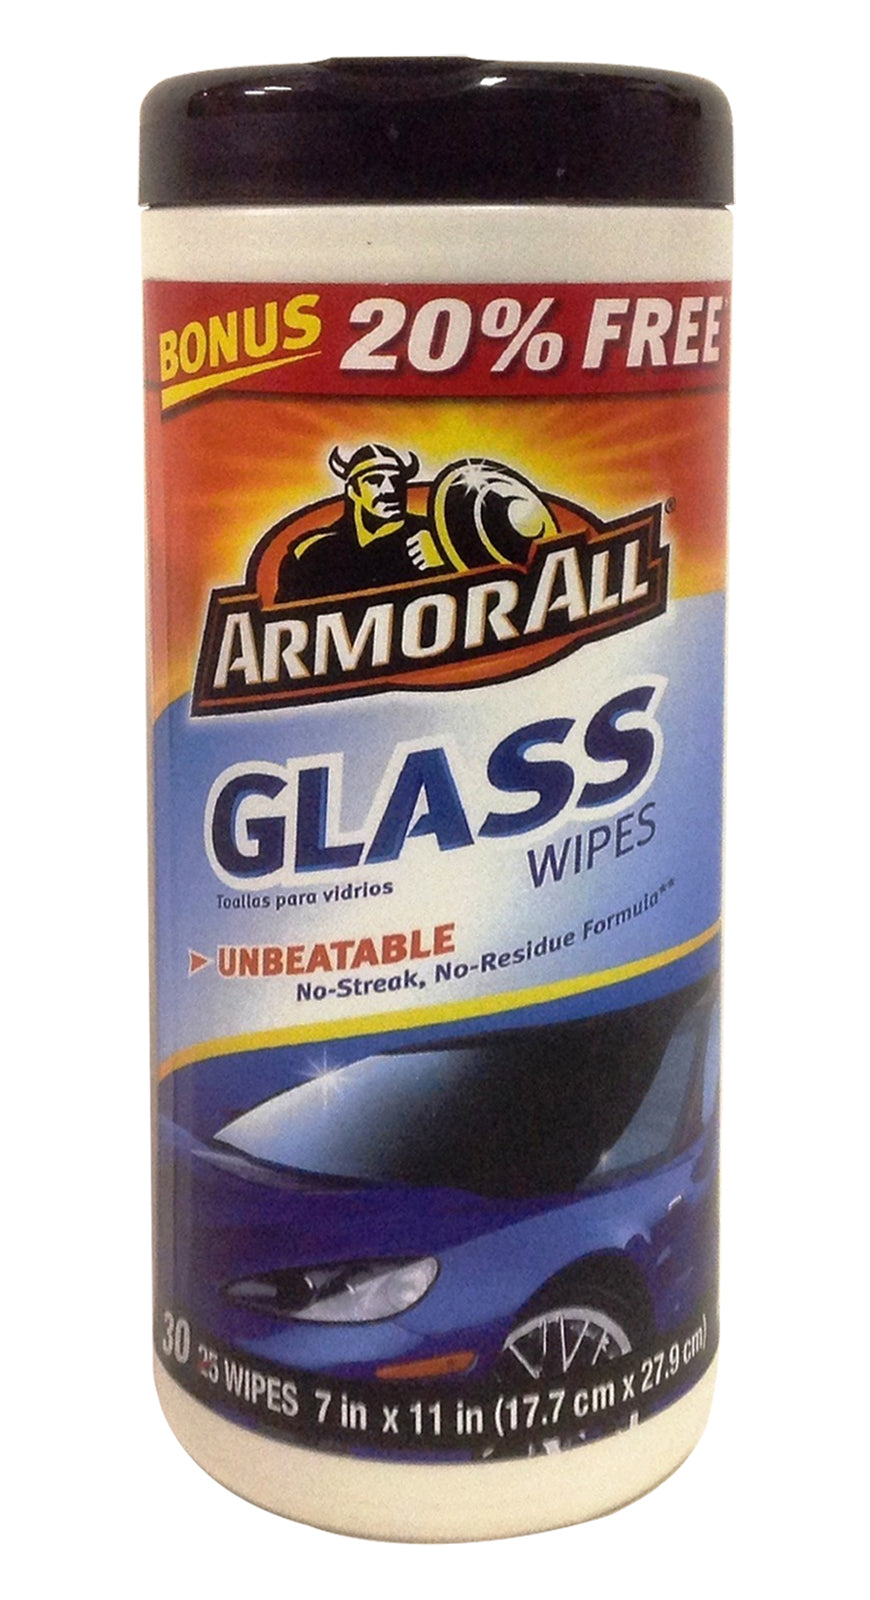 Armorall Wipes Hidden Compartment Safe - Cheeky Ninjas